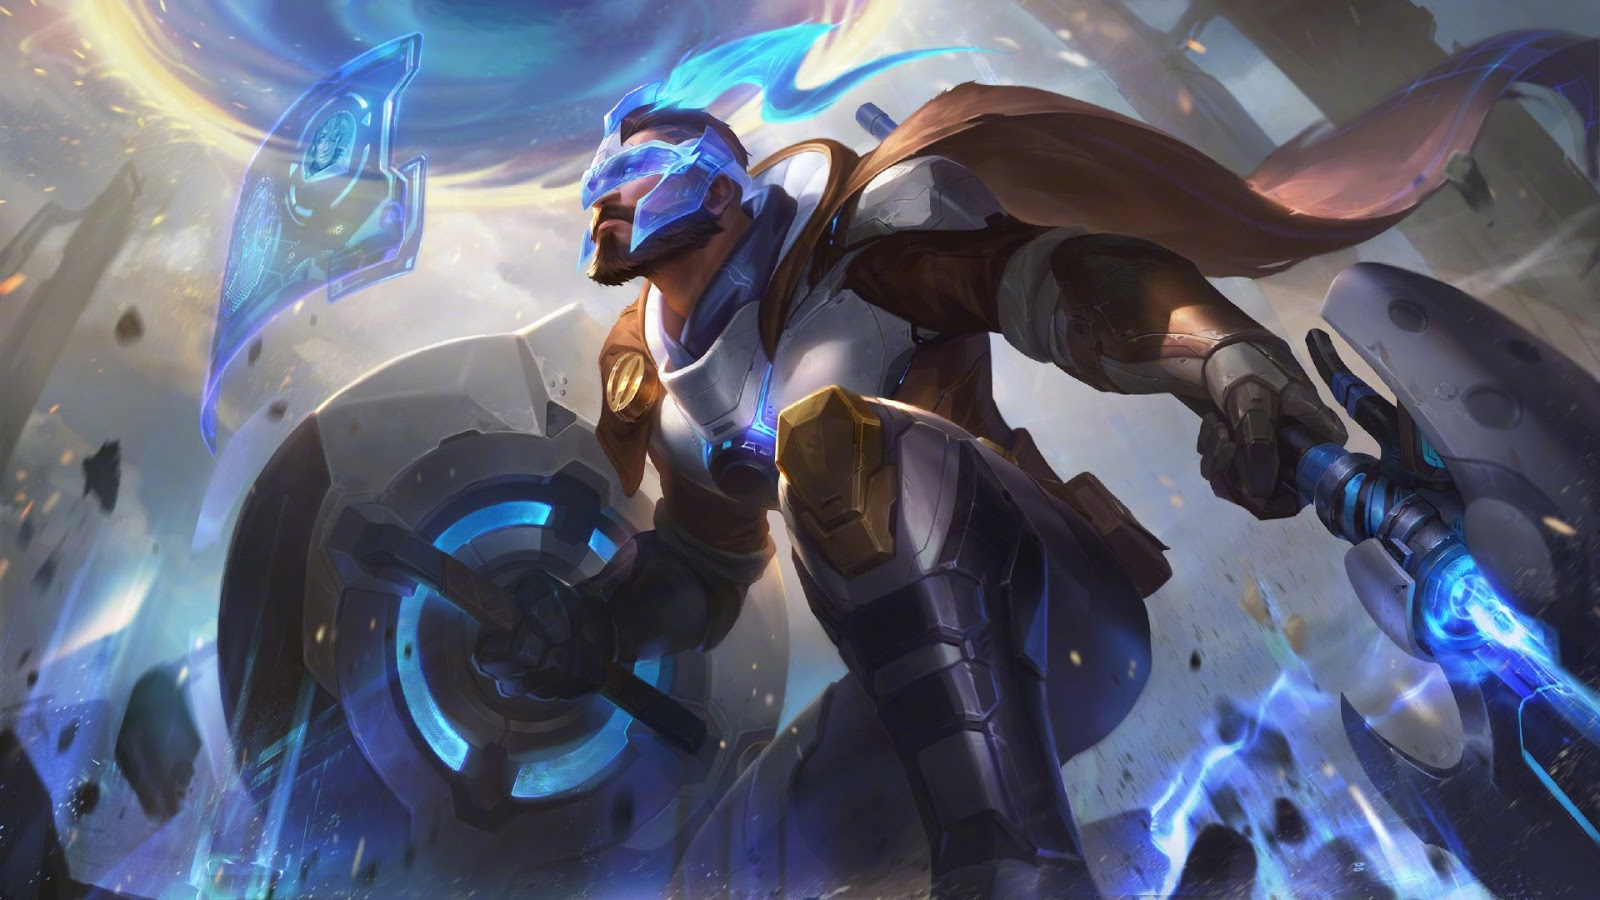 Pulsefire Pantheon splash art for League of Legends